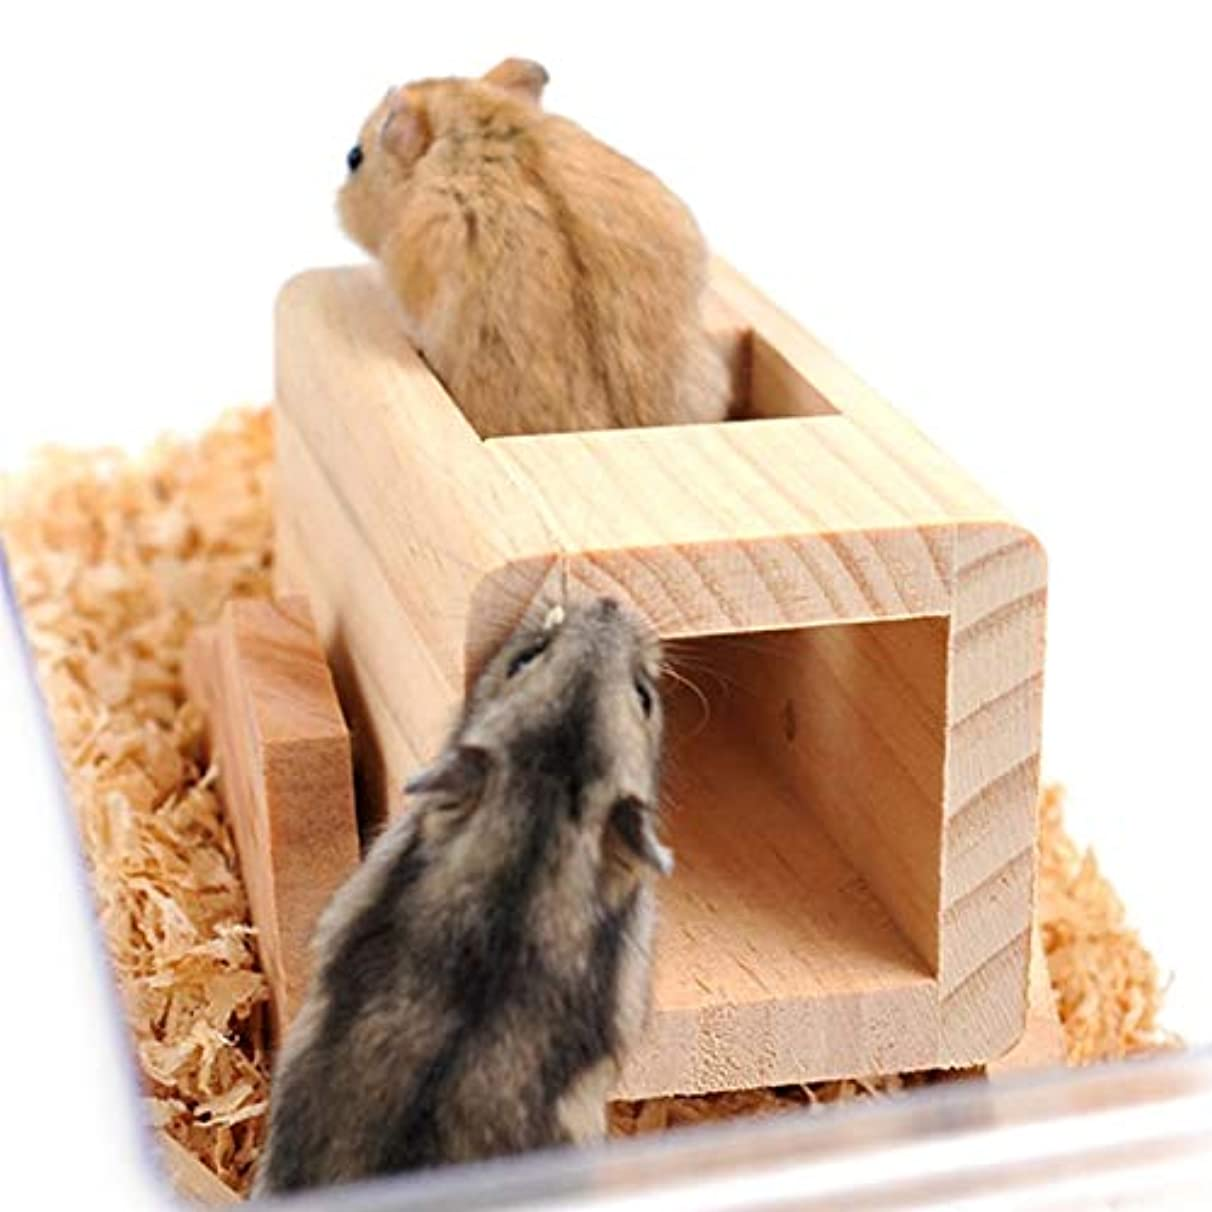 Hamster Tunnel - 1pc Wooden Hamster Square Seesaw Tube Tunnel Cage House Small Pet Toy Hamsters Funny Gift - Fabric Wooden Pangolin House Cage Pillow Marvel Hoverboard Accessory Ferret Pl